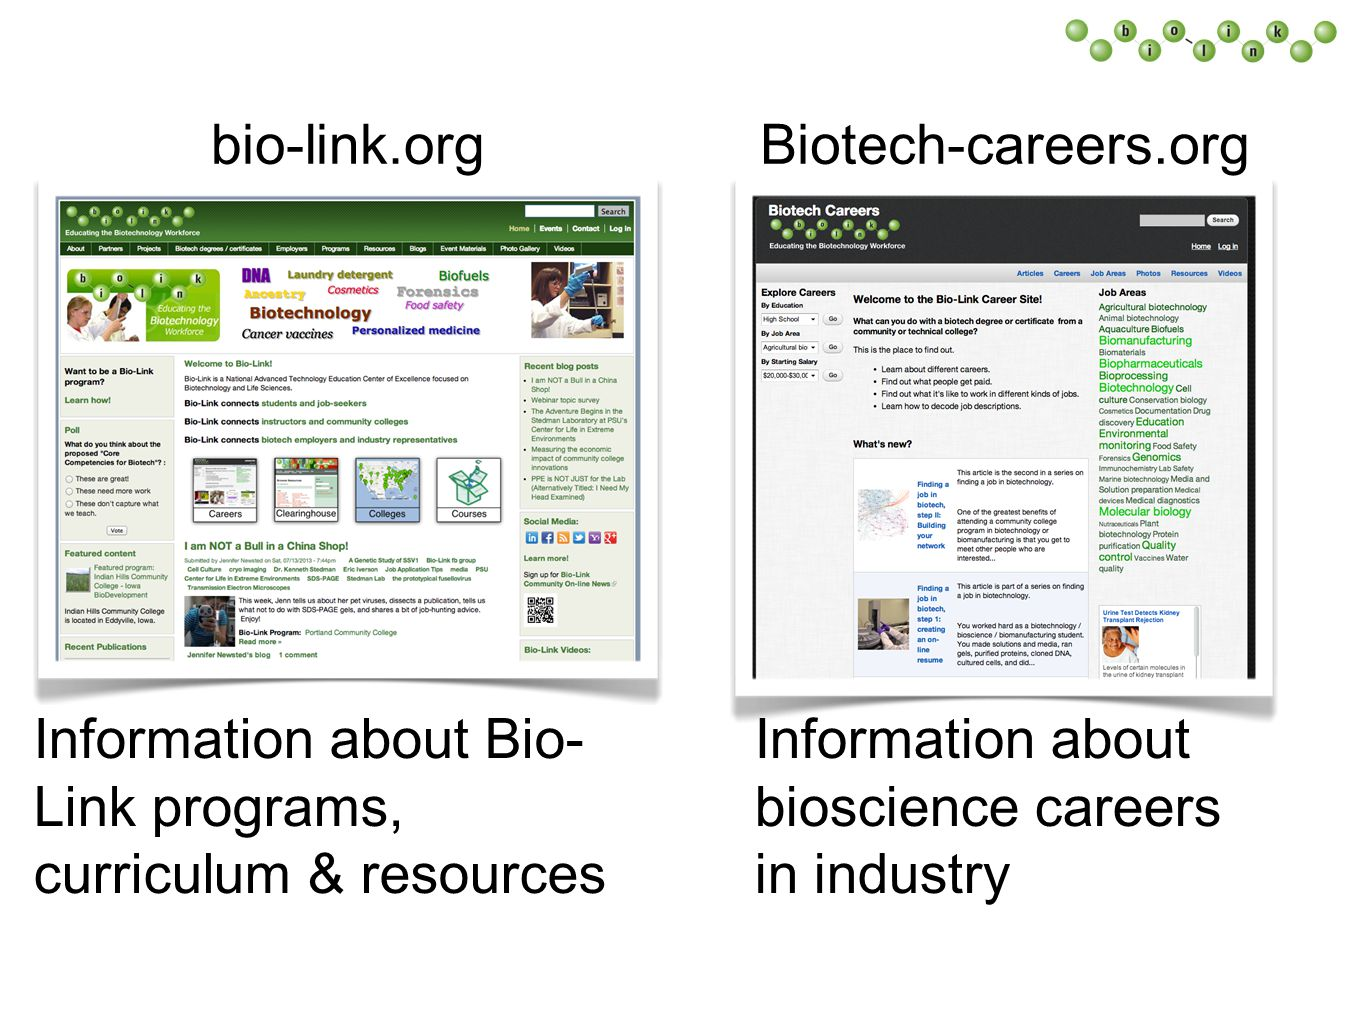 Biotech-careers.orgbio-link.org Information about Bio- Link programs, curriculum & resources Information about bioscience careers in industry